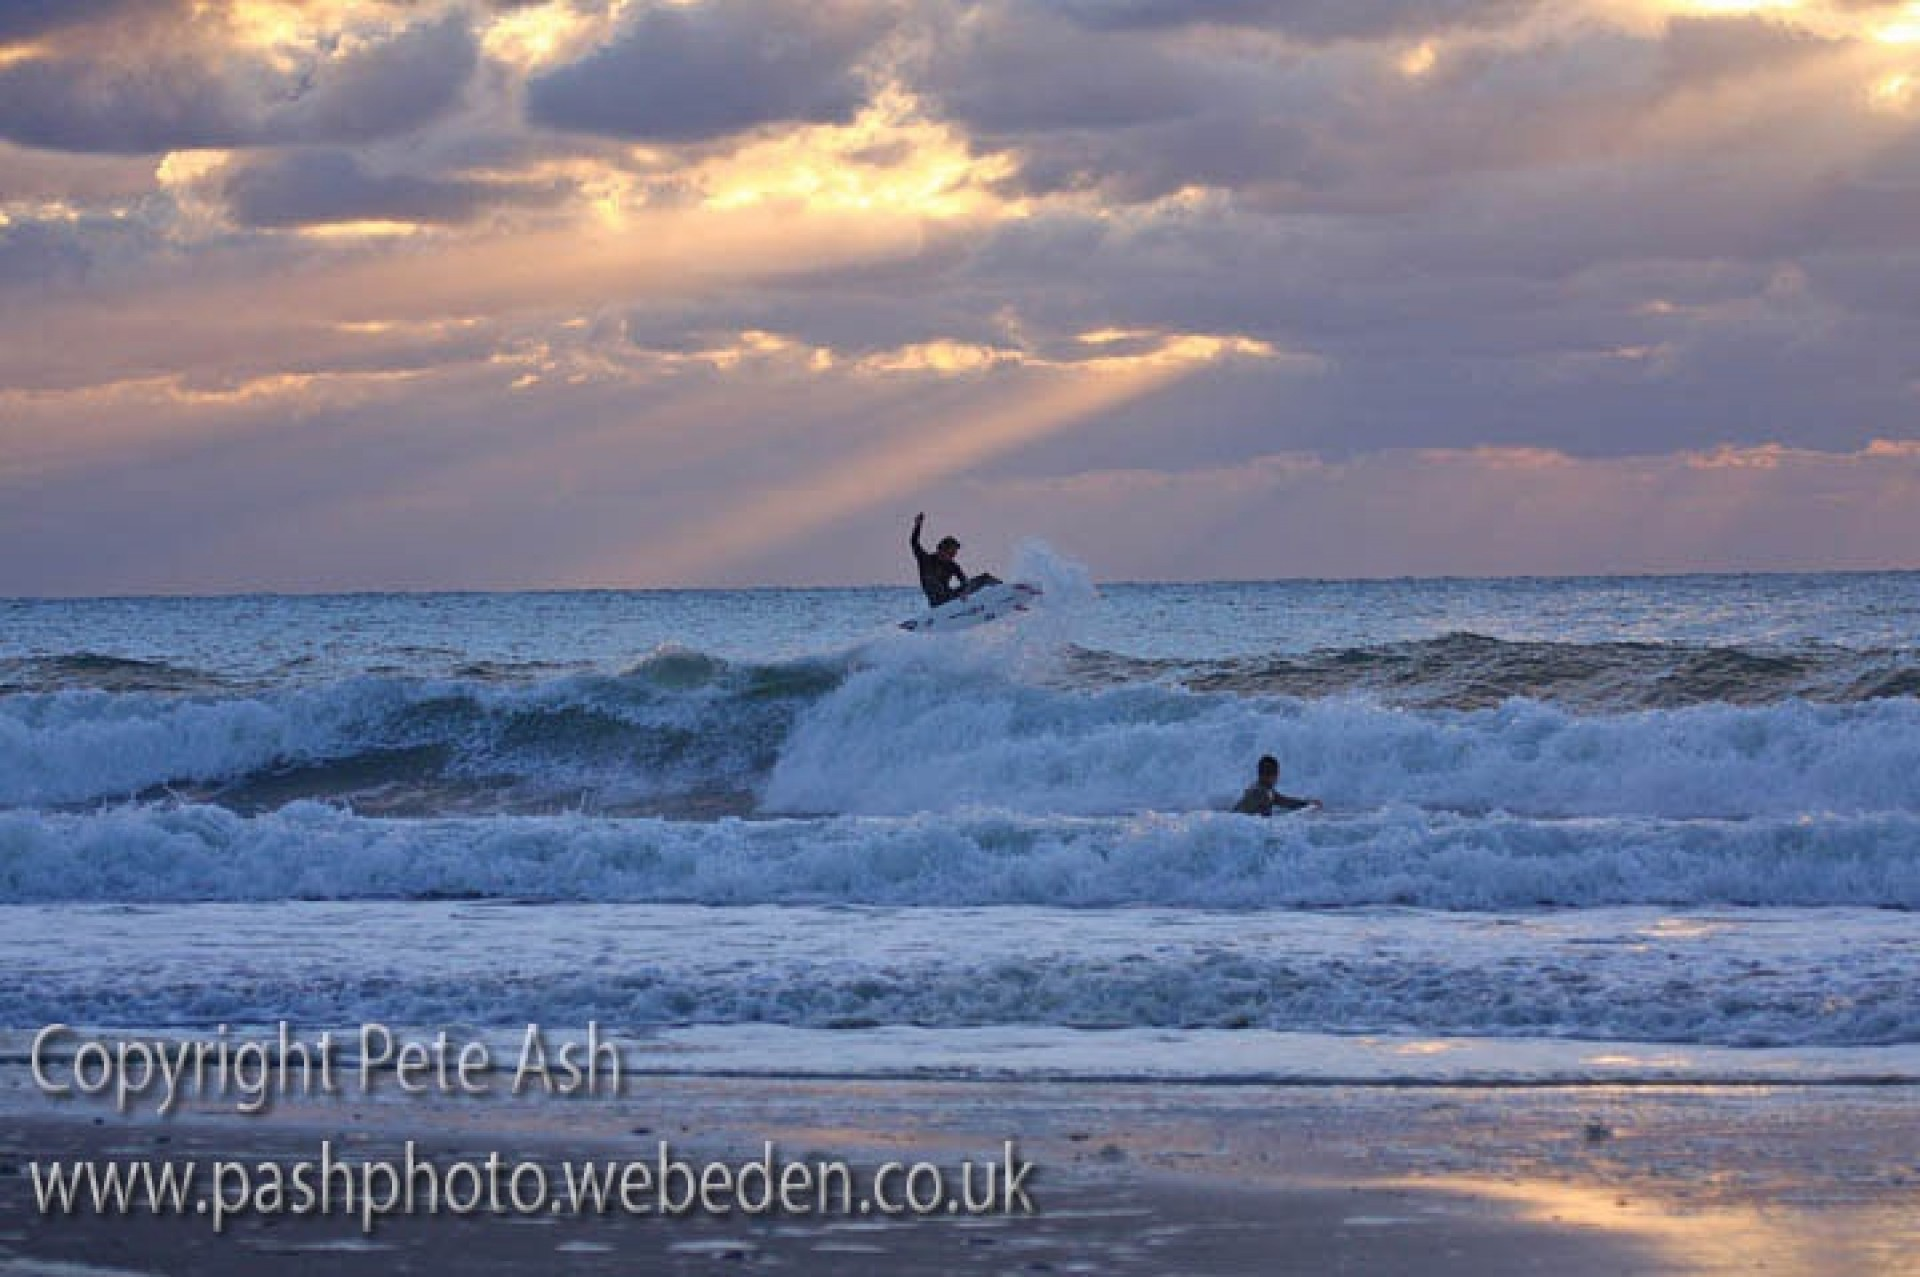 Pete Ash's photo of Bude - Crooklets